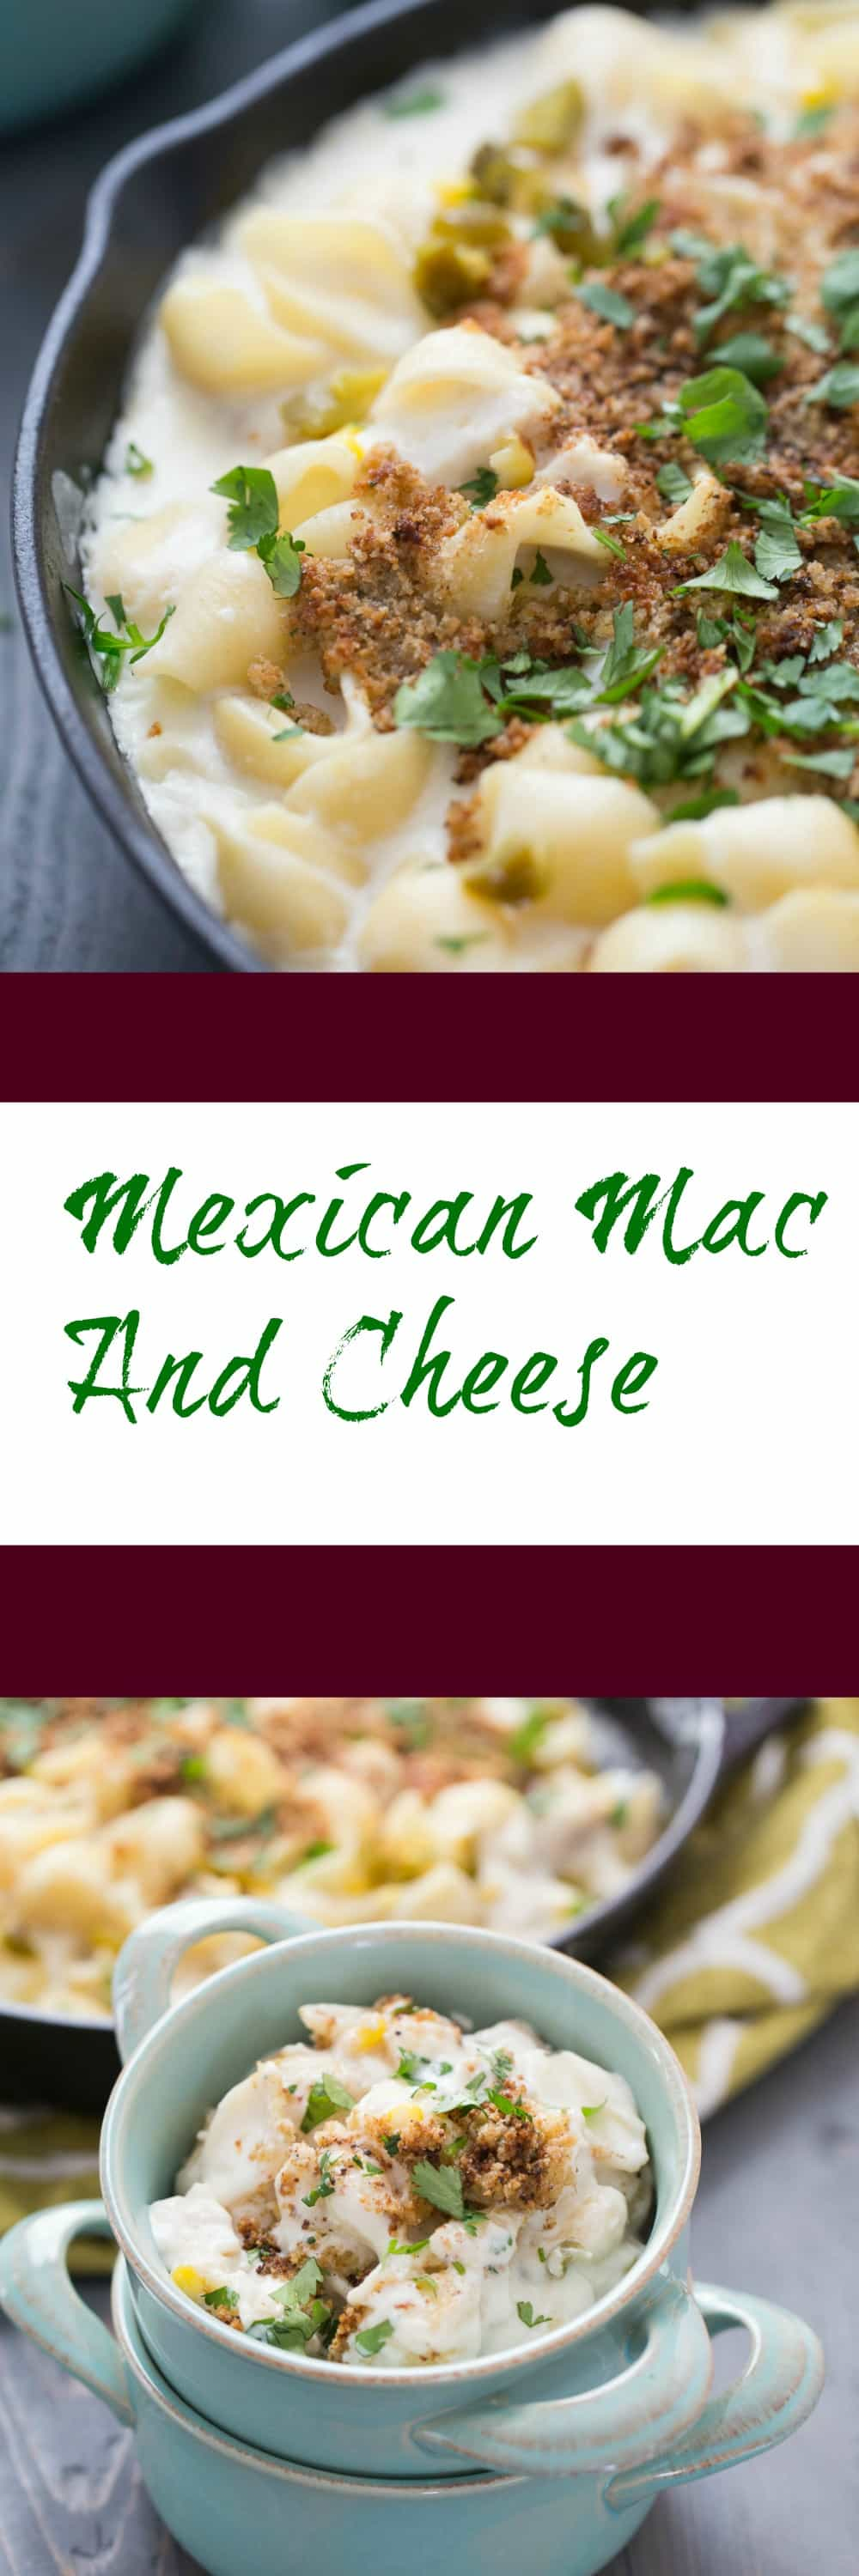 This Mexican Mac and Cheese is going to have you hooked with one bite! Chicken, corn and cheese abound in each bite!